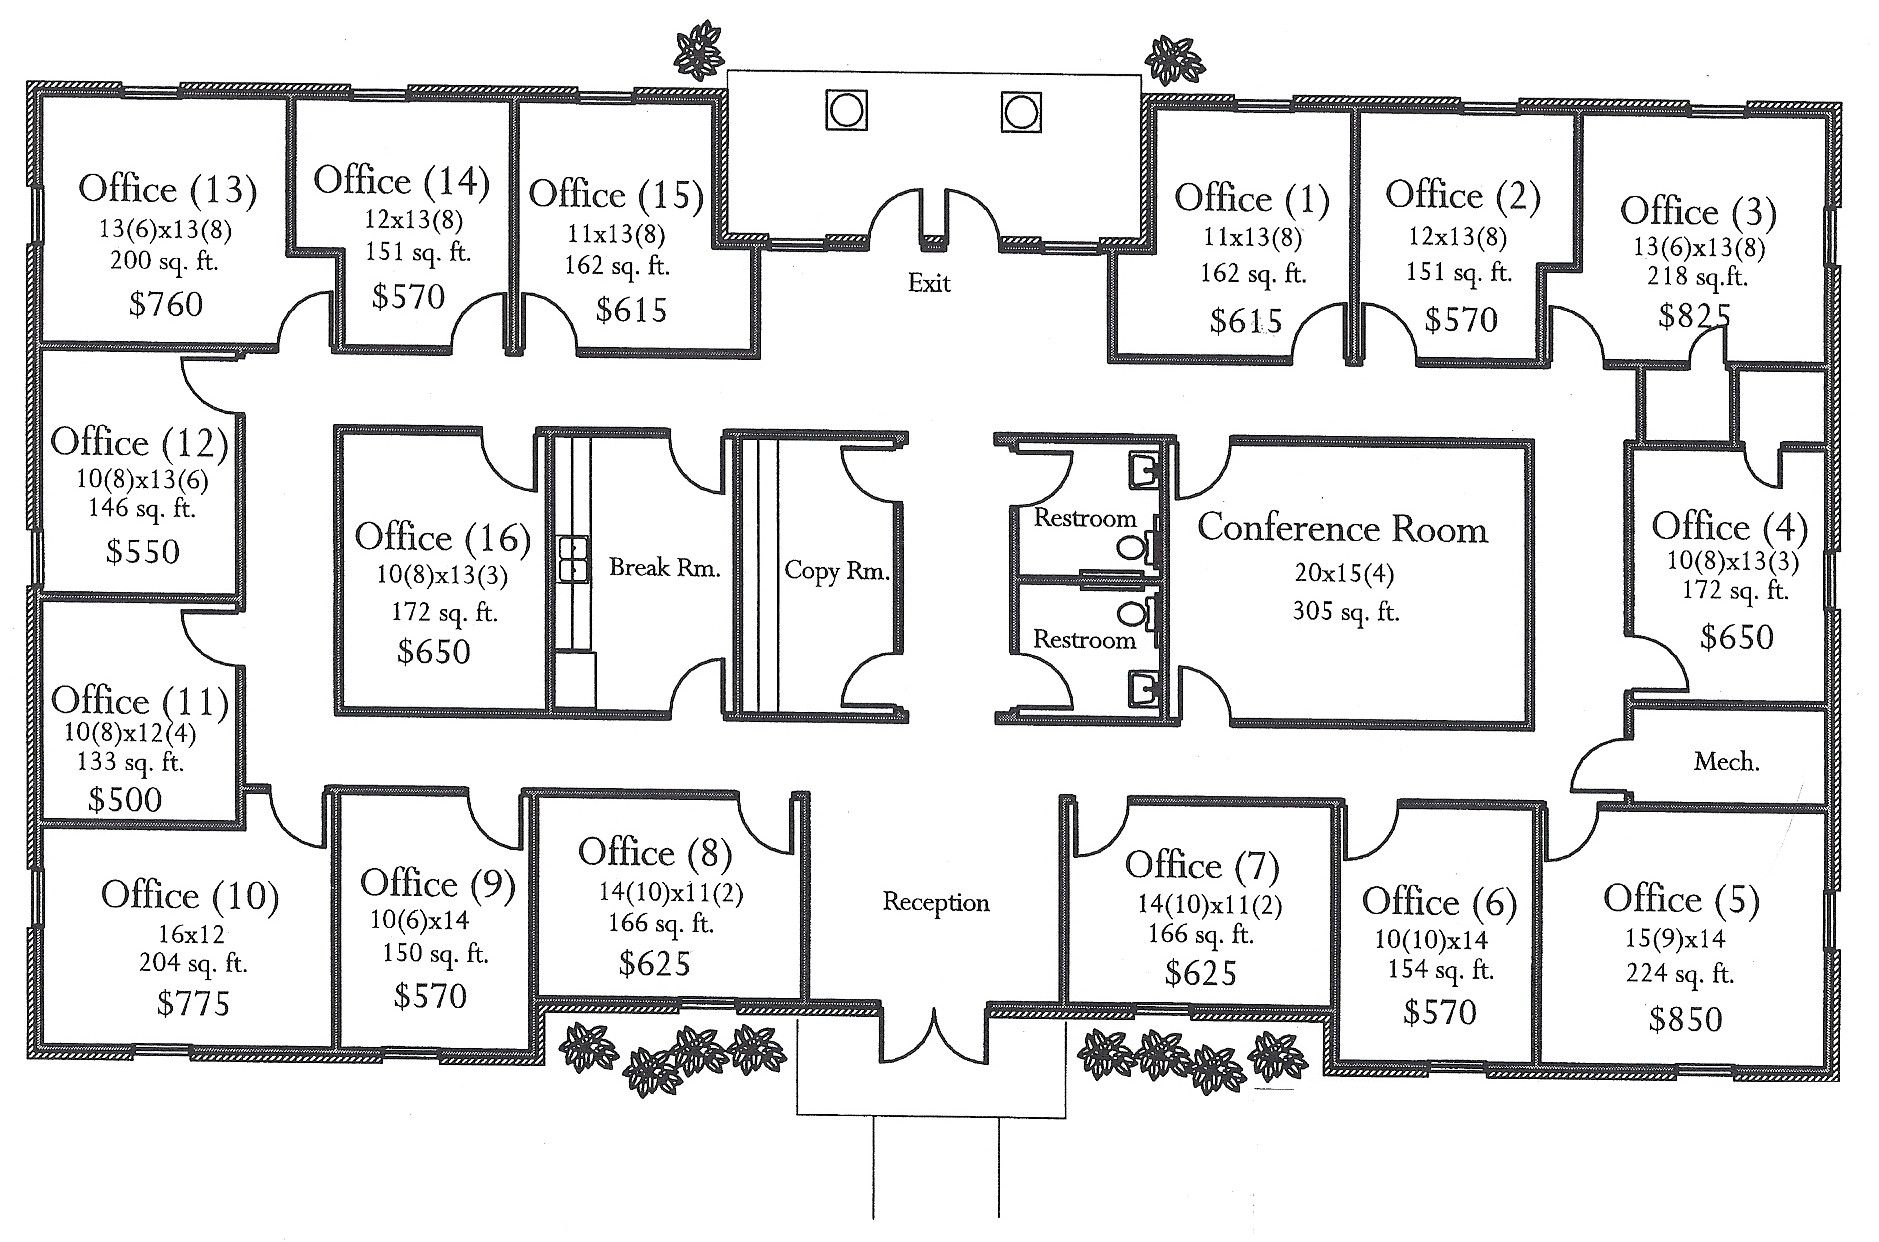 Floor plan for small medical office evstudio architect for Office building plans and designs